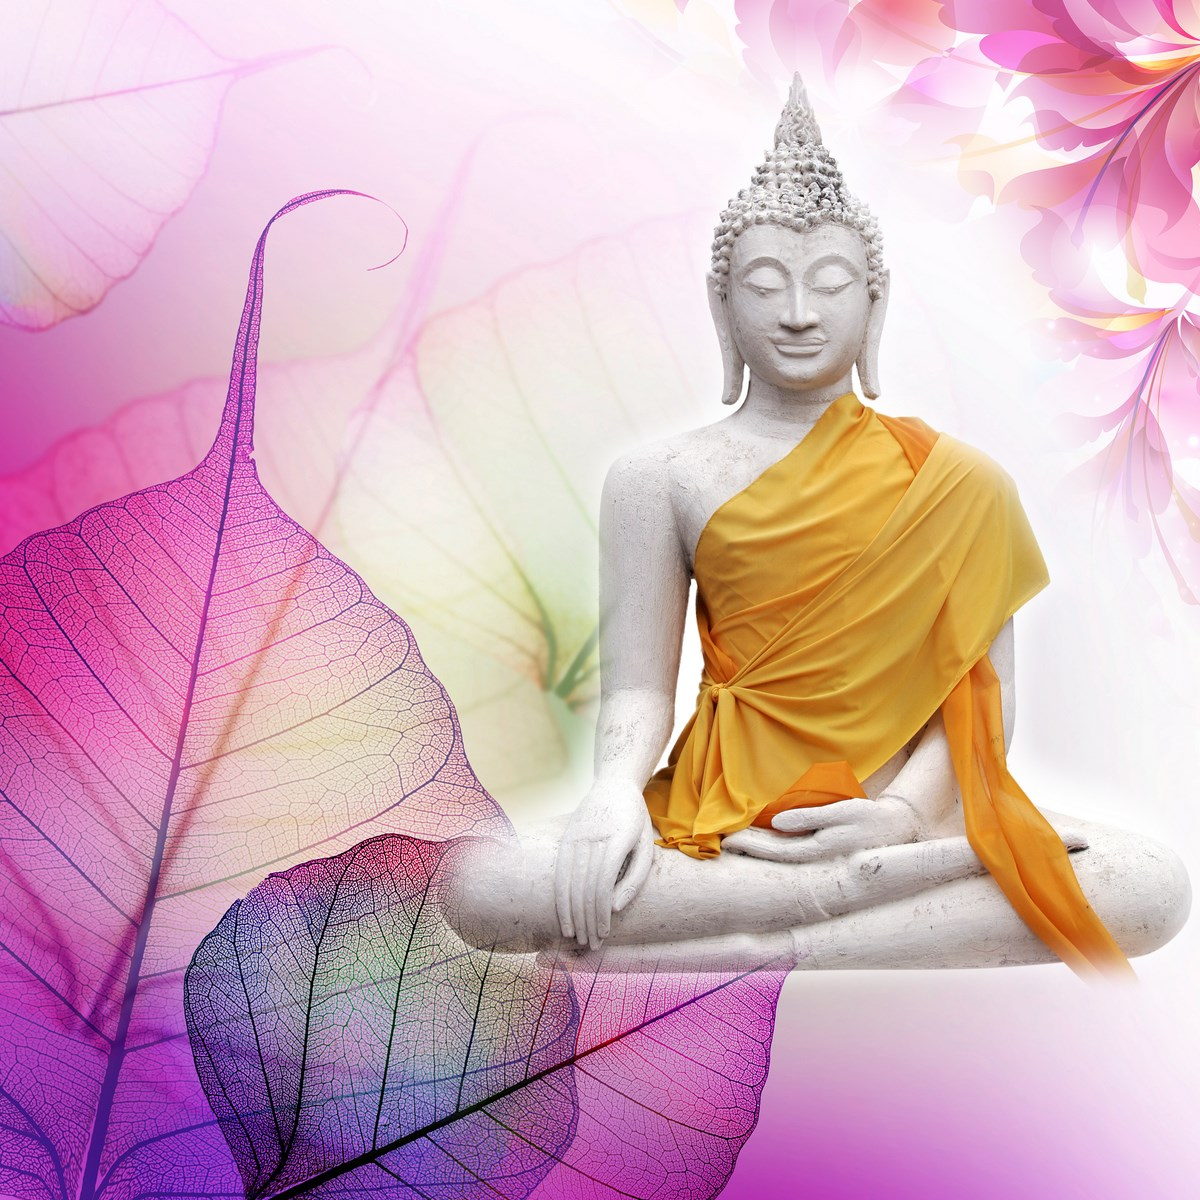 Wallpapers Of Buddha